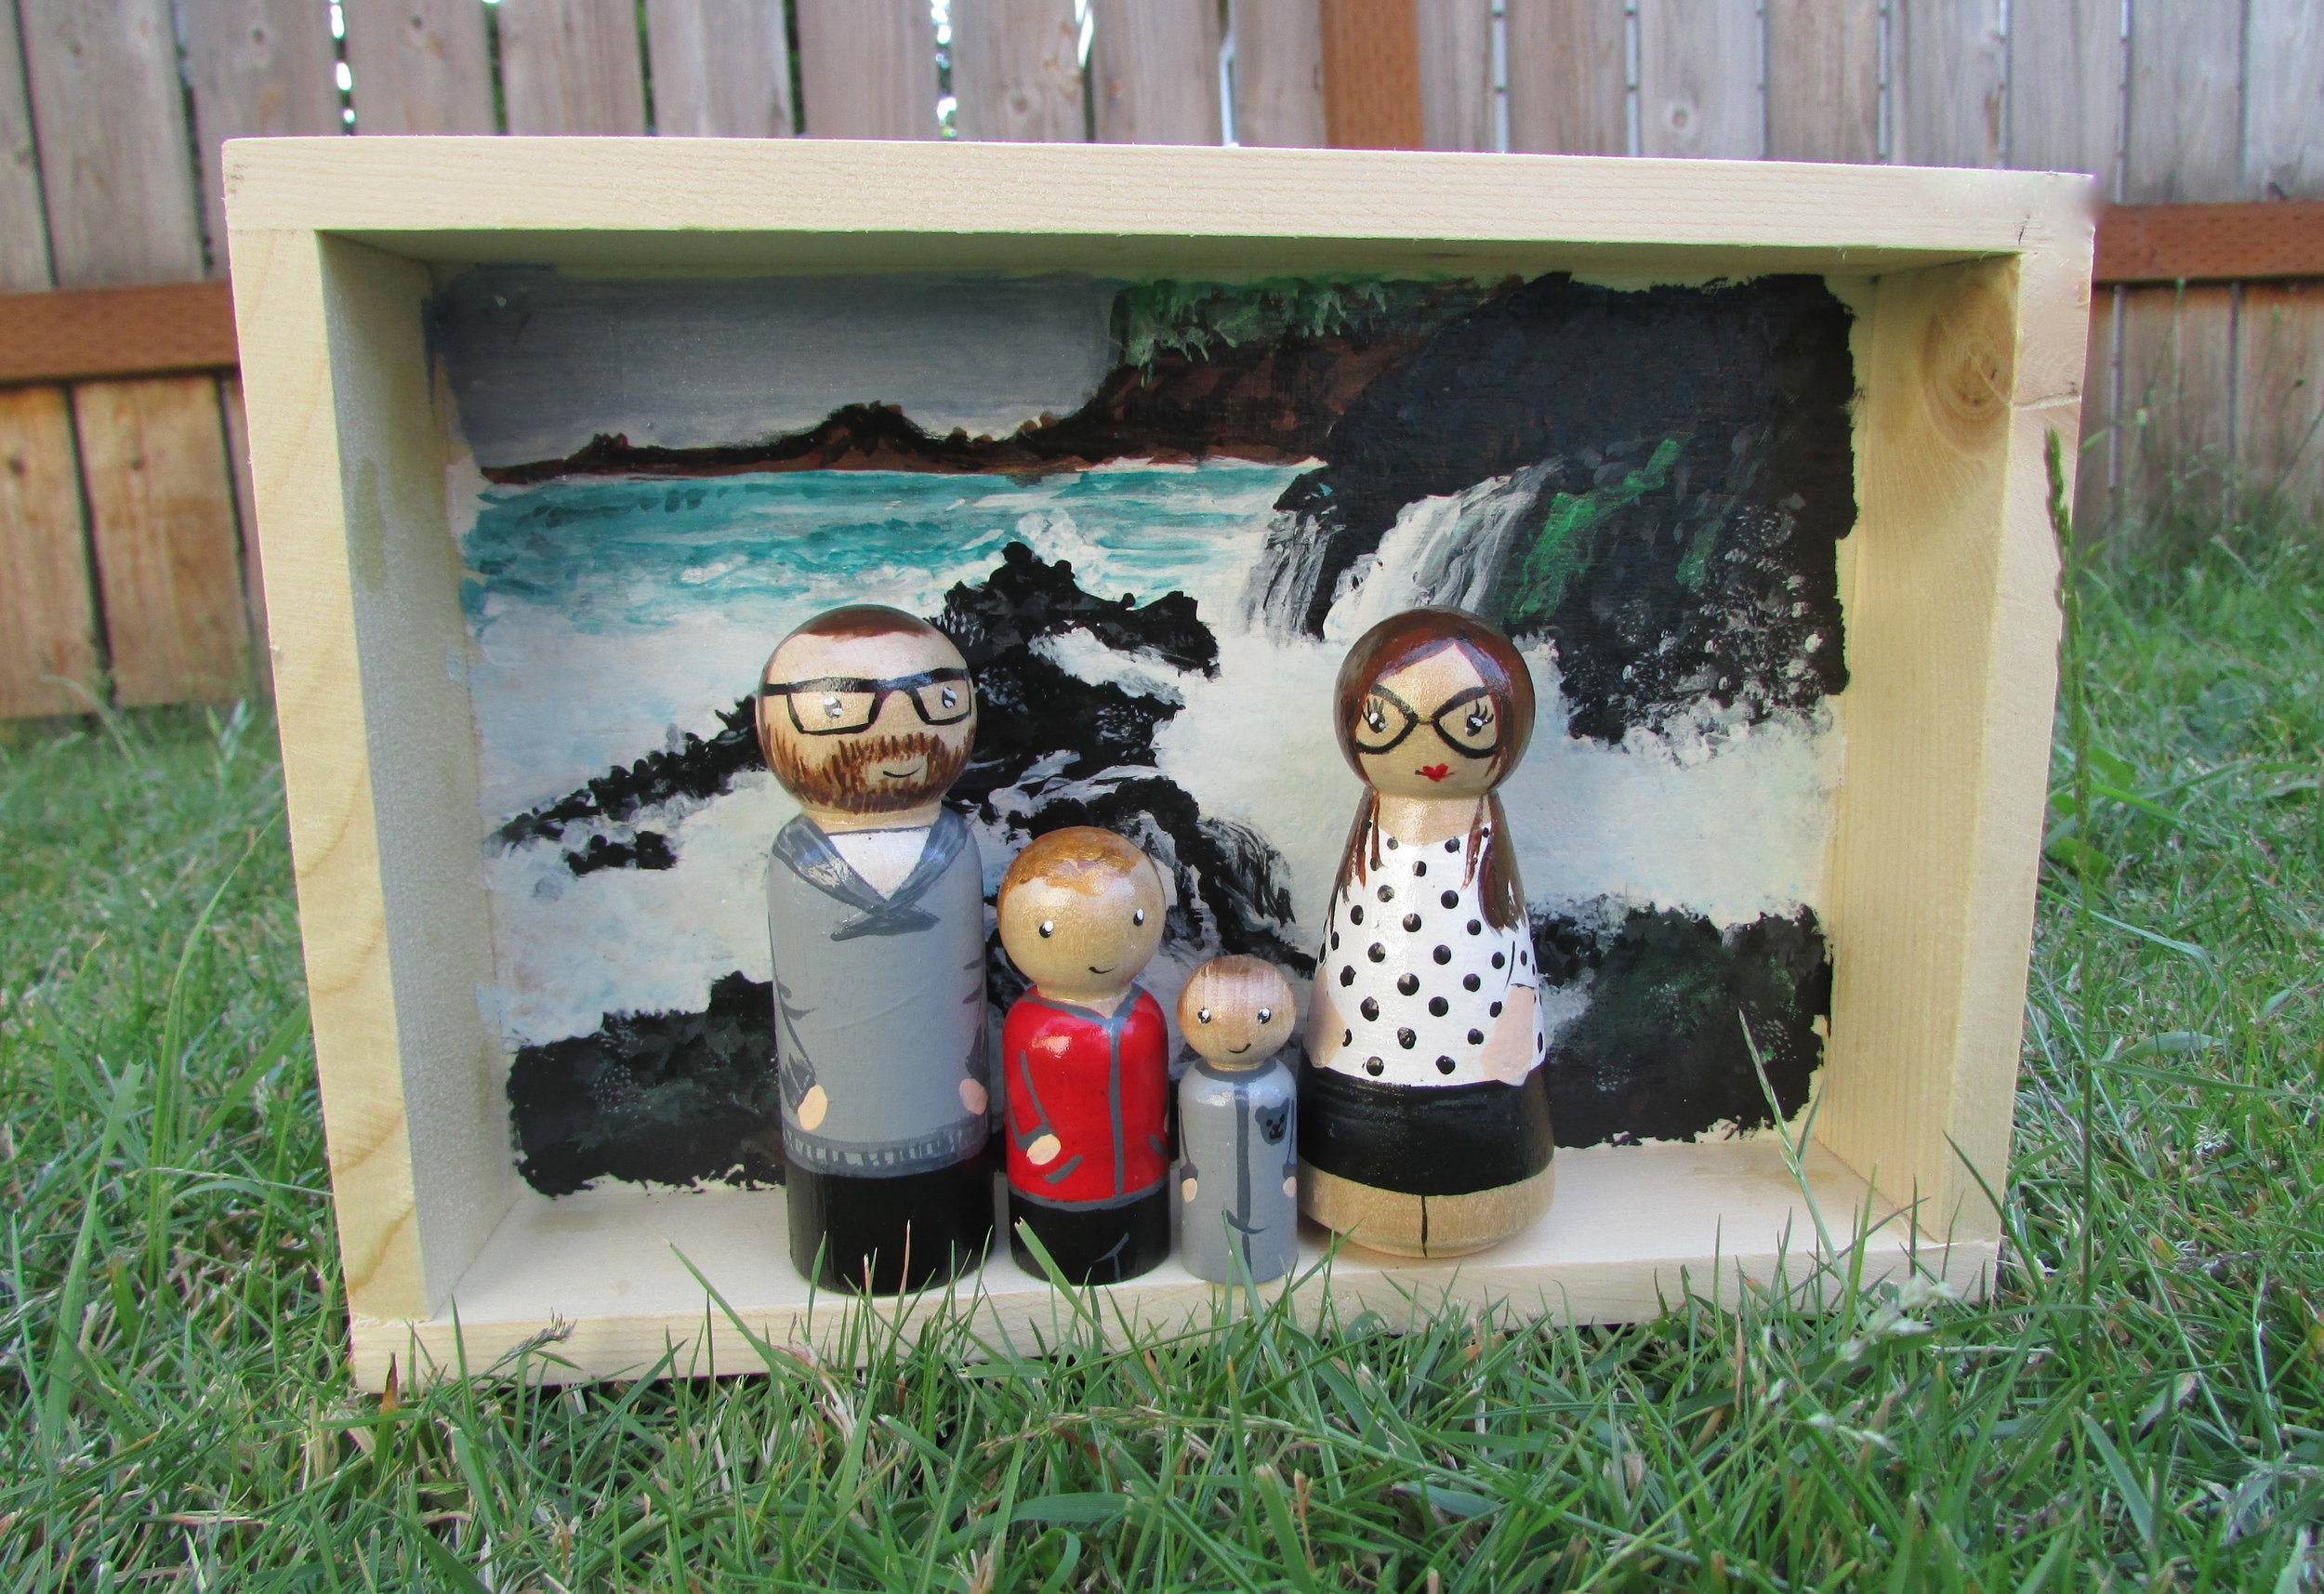 Remembering Home - This beautiful family were on the way to starting a new adventure in Germany when this Shadow Box was ordered. Back drop to their little family is their favorite beach in the Pacific North West and a way for them to remember their home while living up new adventures in their new home!Box size 6x8 inches. 4 peg dolls. Starts at $110